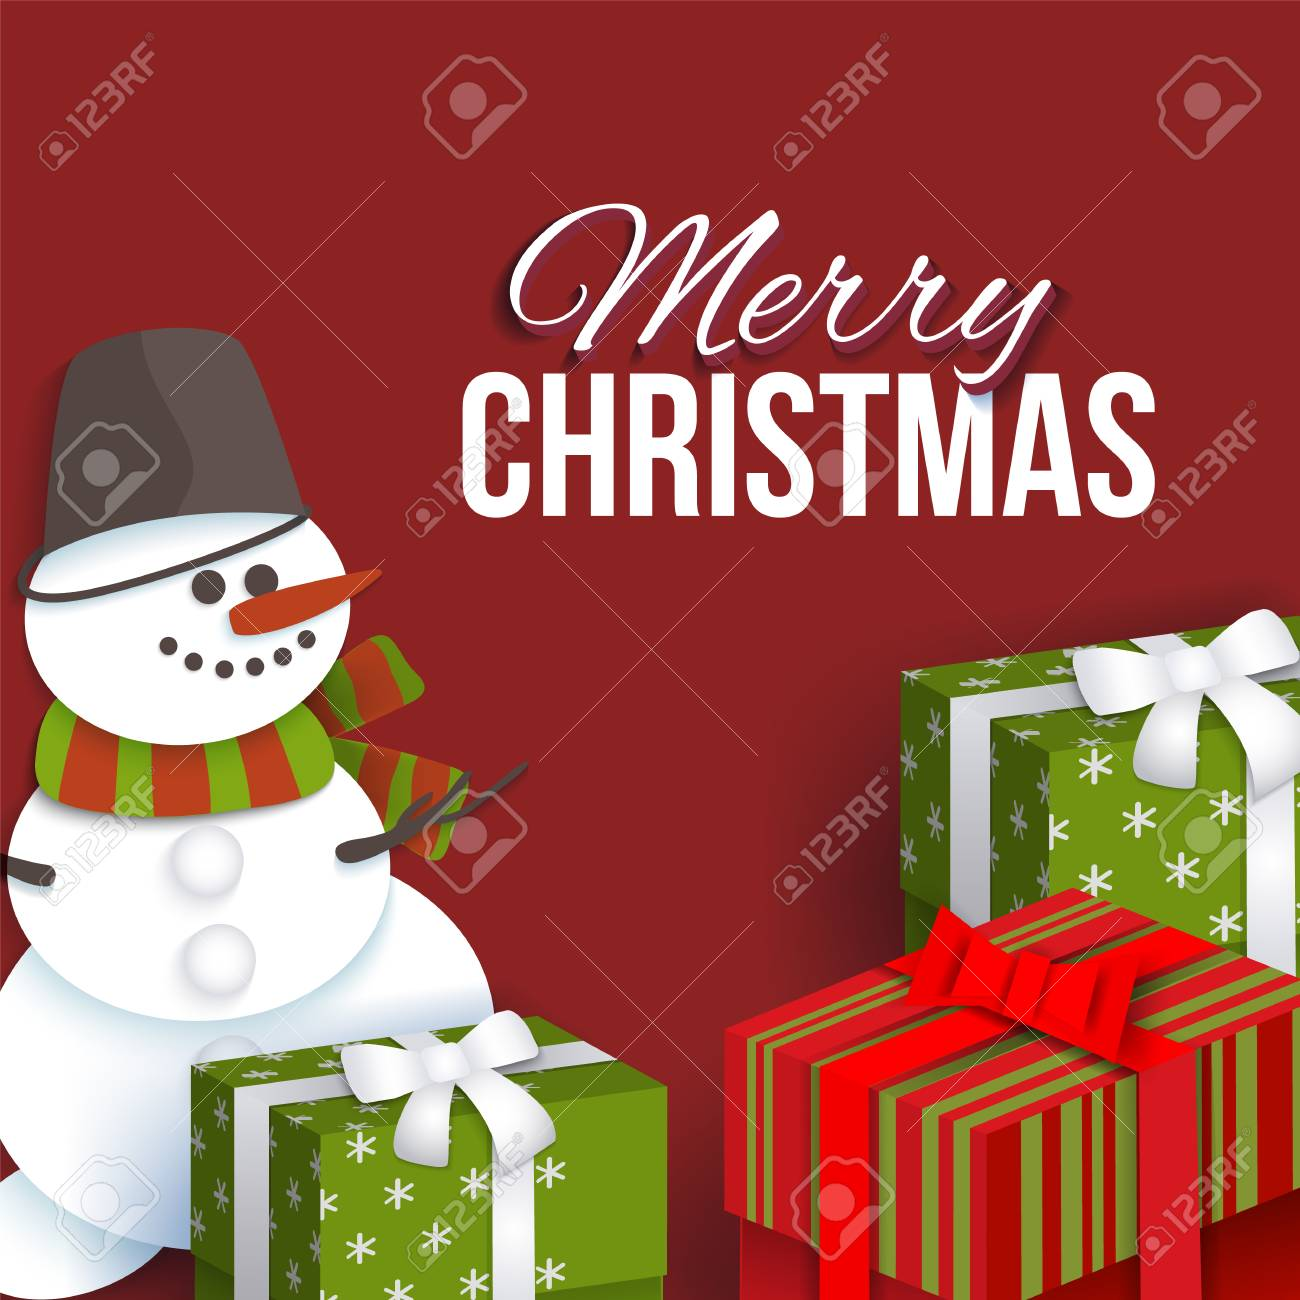 Merry Christmas Greeting Card Template With Paper Cut Snowman